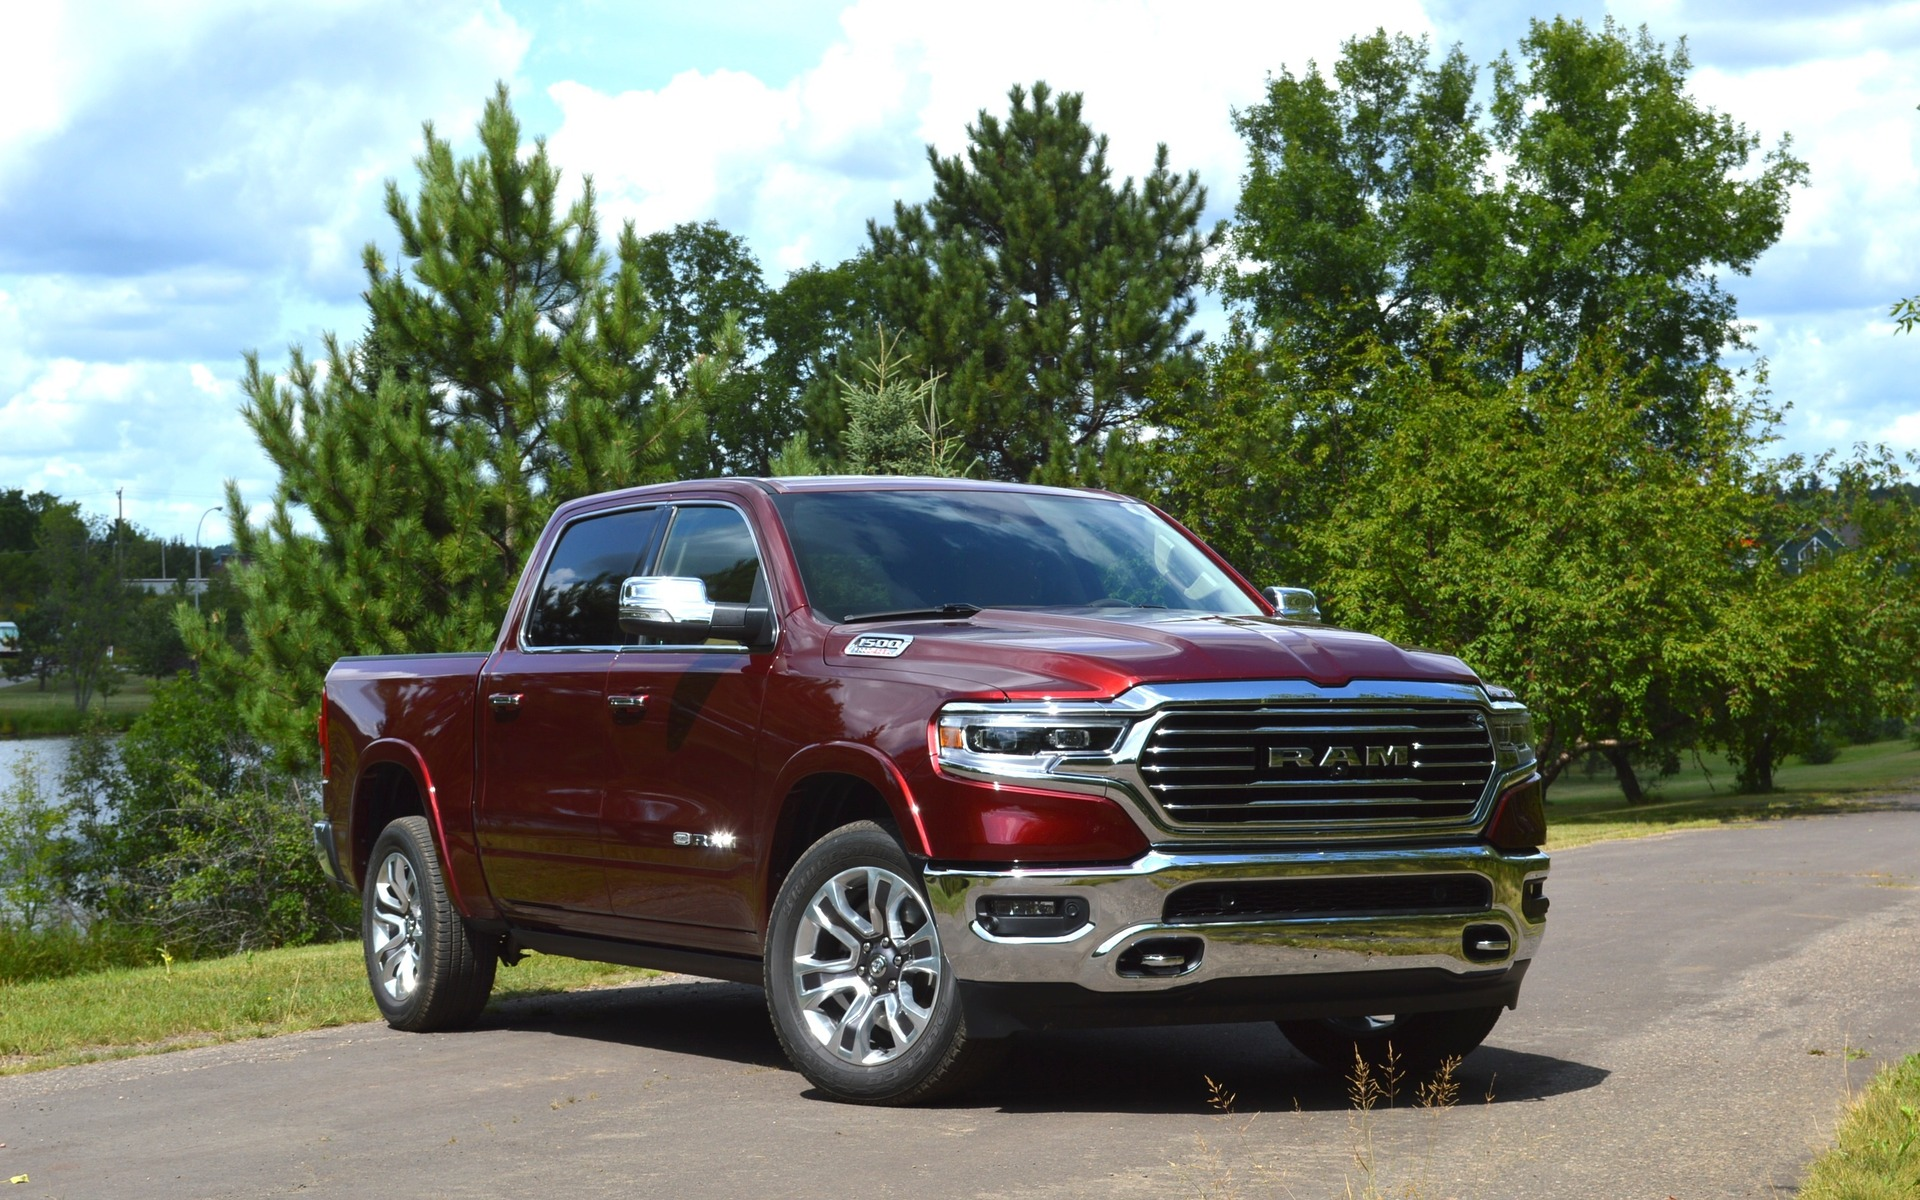 Dodge Ram Ecodiesel >> 2020 Ram 1500 Ecodiesel Torque Treat The Car Guide